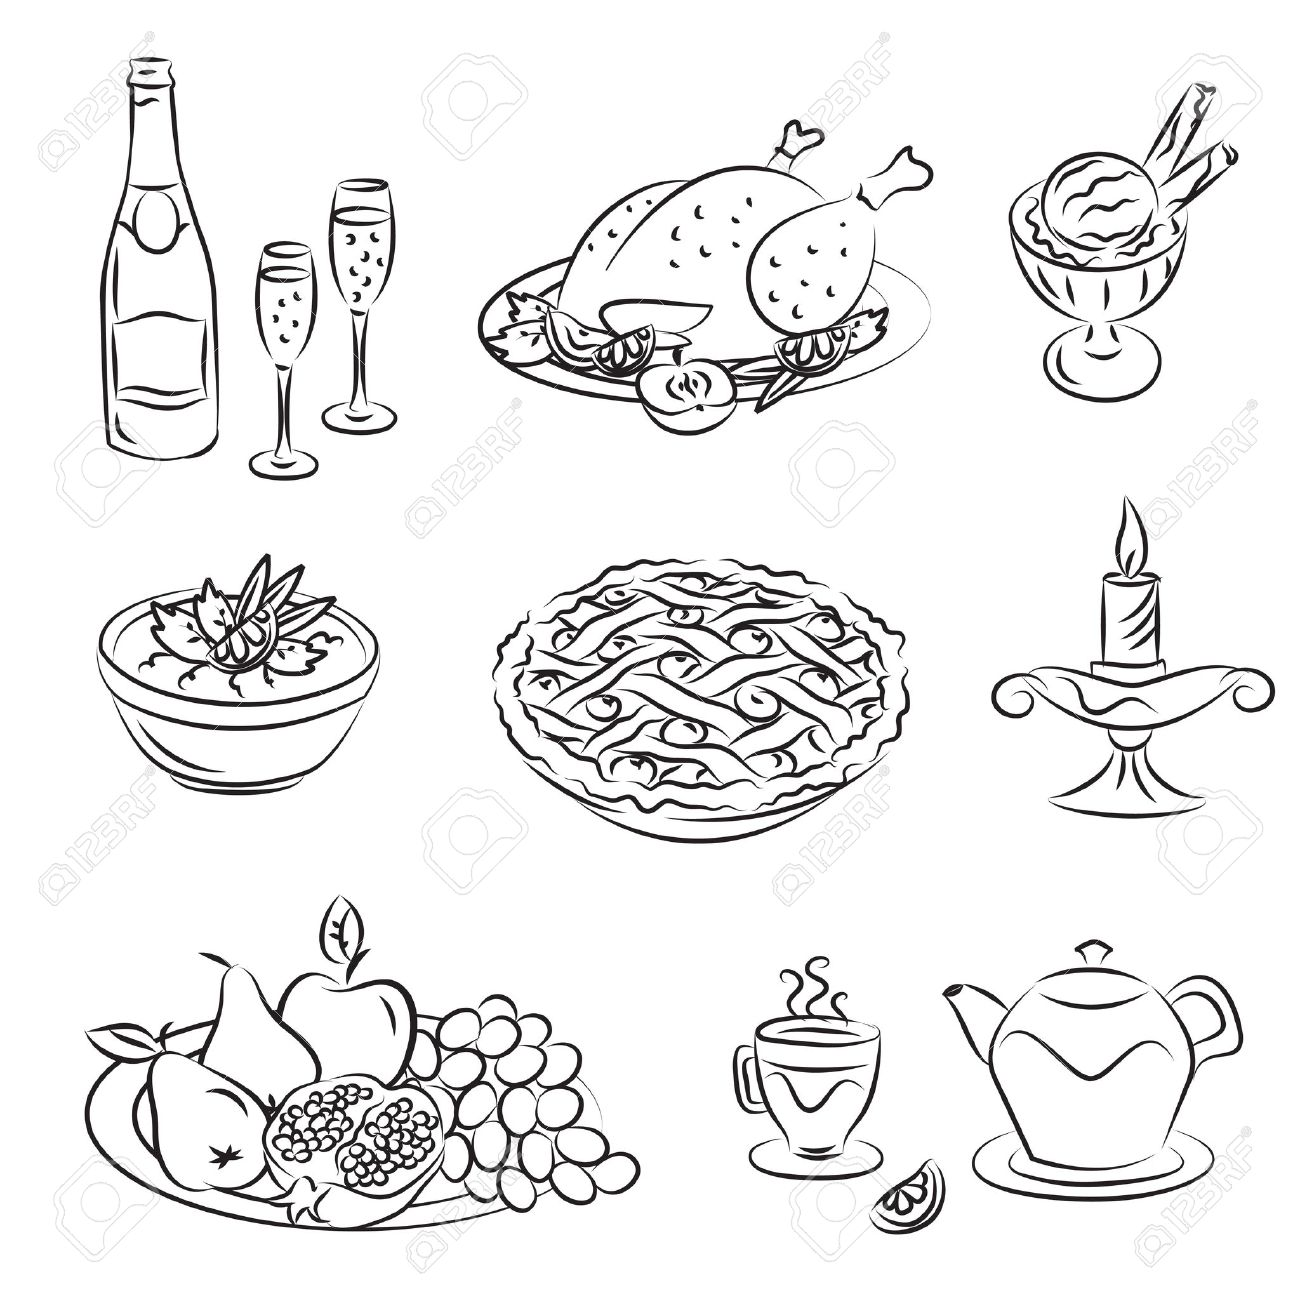 1300x1300 Holiday Family Dinner Royalty Free Cliparts, Vectors, And Stock